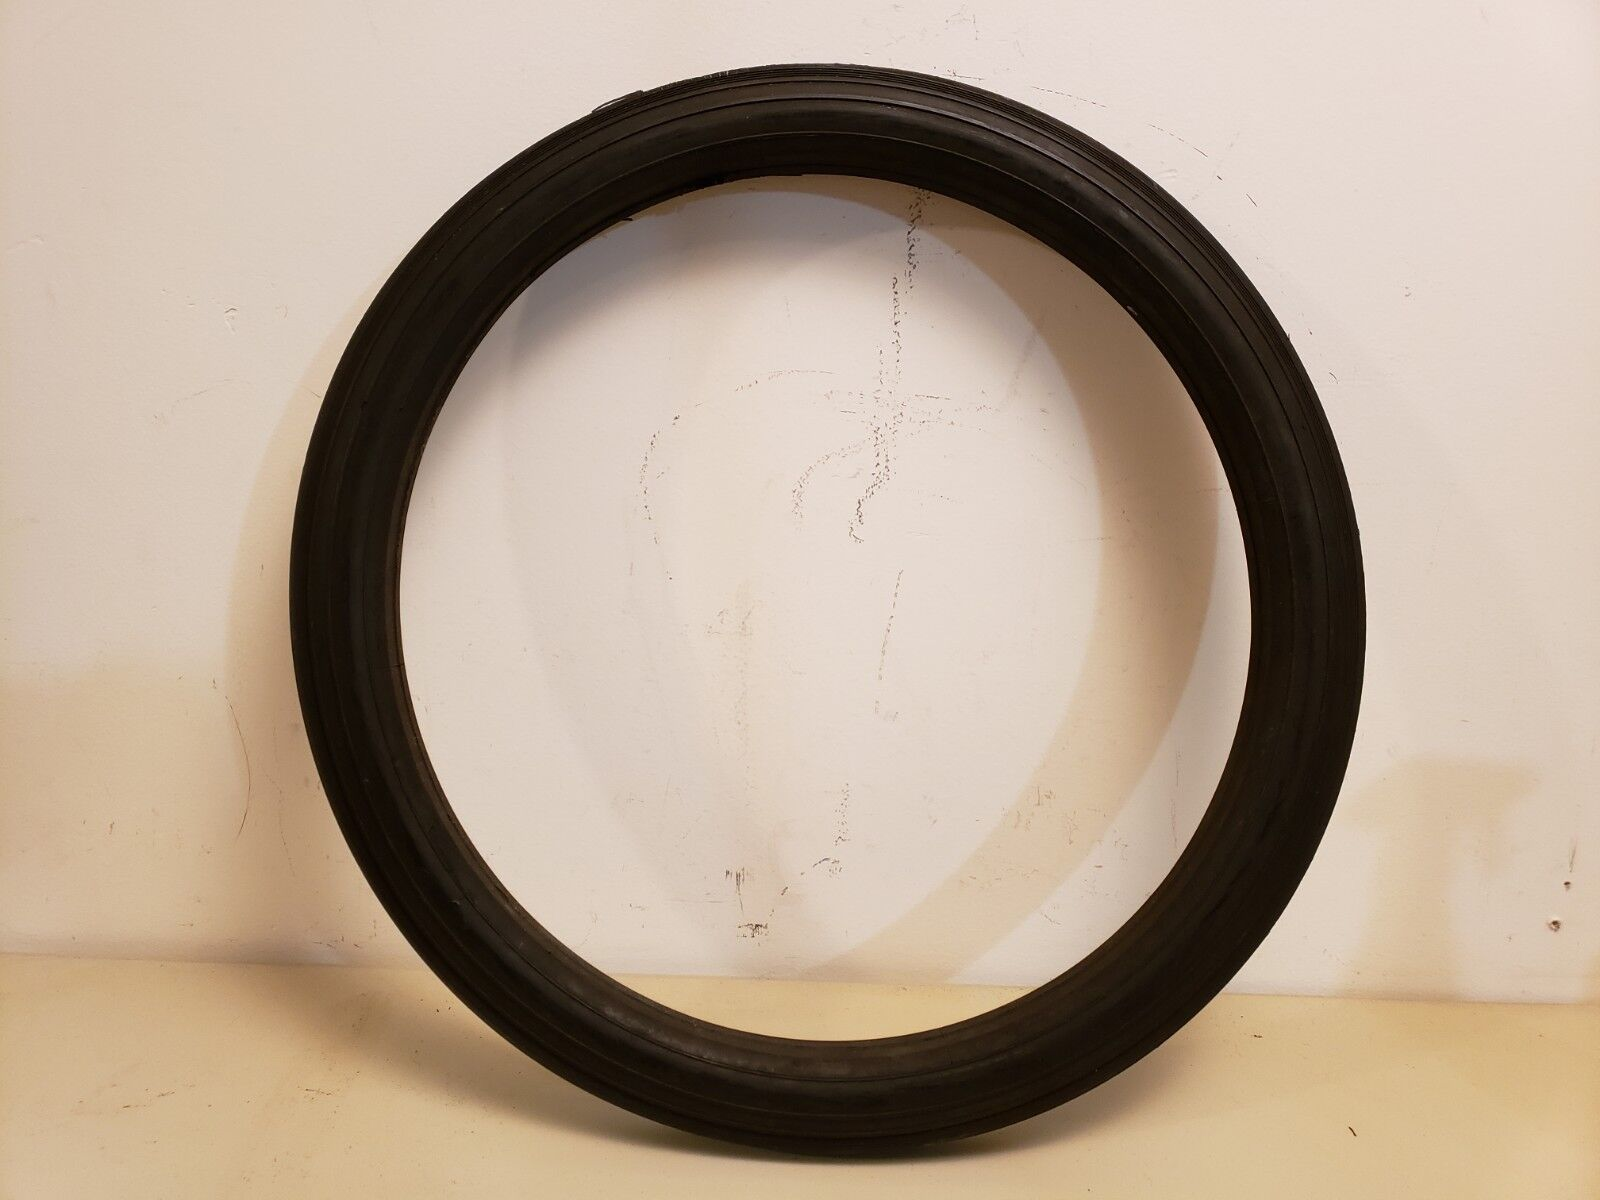 NOS Vintage Vintage Vintage Solid Rubber Tire 18 7 8  O.D. - 15 5 8  I.D Tricycle Wagon, Tractor 23b9e3